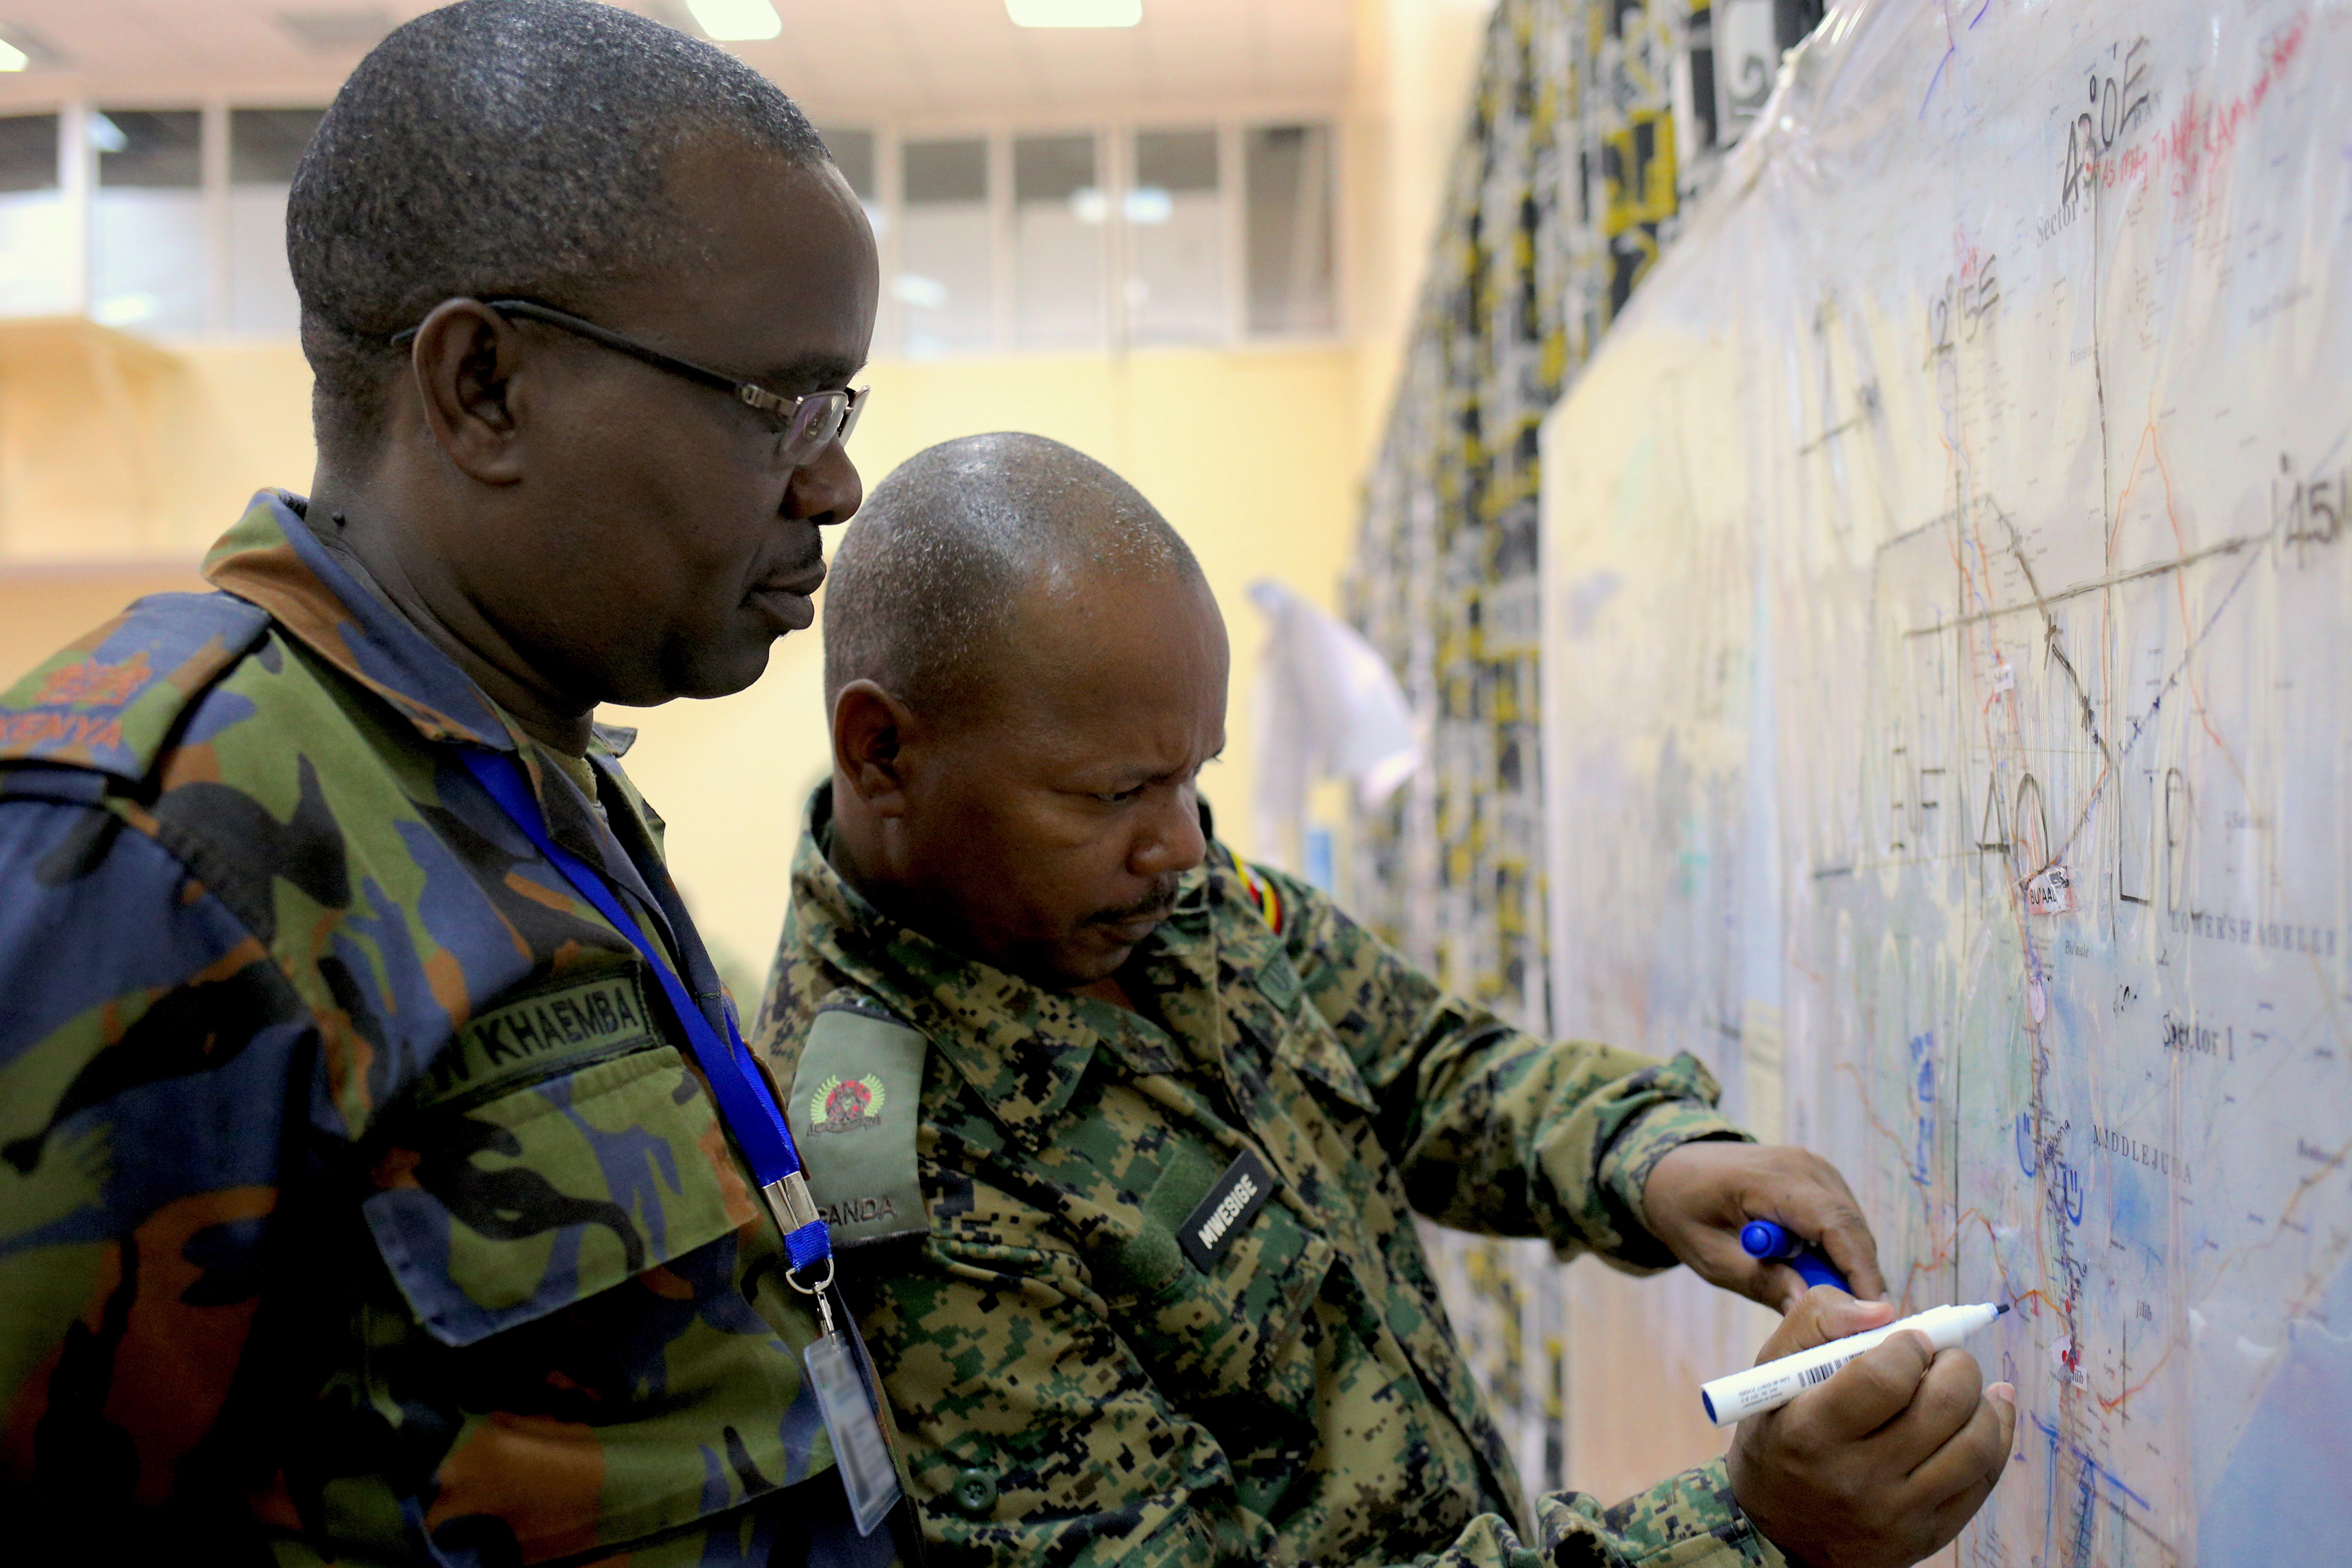 Kenya Defense Force Maj. Andrew Khaema and Uganda People's Defense Force Maj. Patrick Mwesige identify locations designated for relief assistance in response to a simulated humanitarian crisis during the command post exercise of the Africa Contingency Operations Training and Assistance force headquarters training program held at the Humanitarian Peace Support School in Nairobi, Kenya, March 9, 2017. The five-week course was facilitated by the U.S. Department of State and is designed to improve Africa's military capabilities by providing selected training necessary for multinational peace support operations. (U.S. Army photo by Capt. Alán Ortiz)